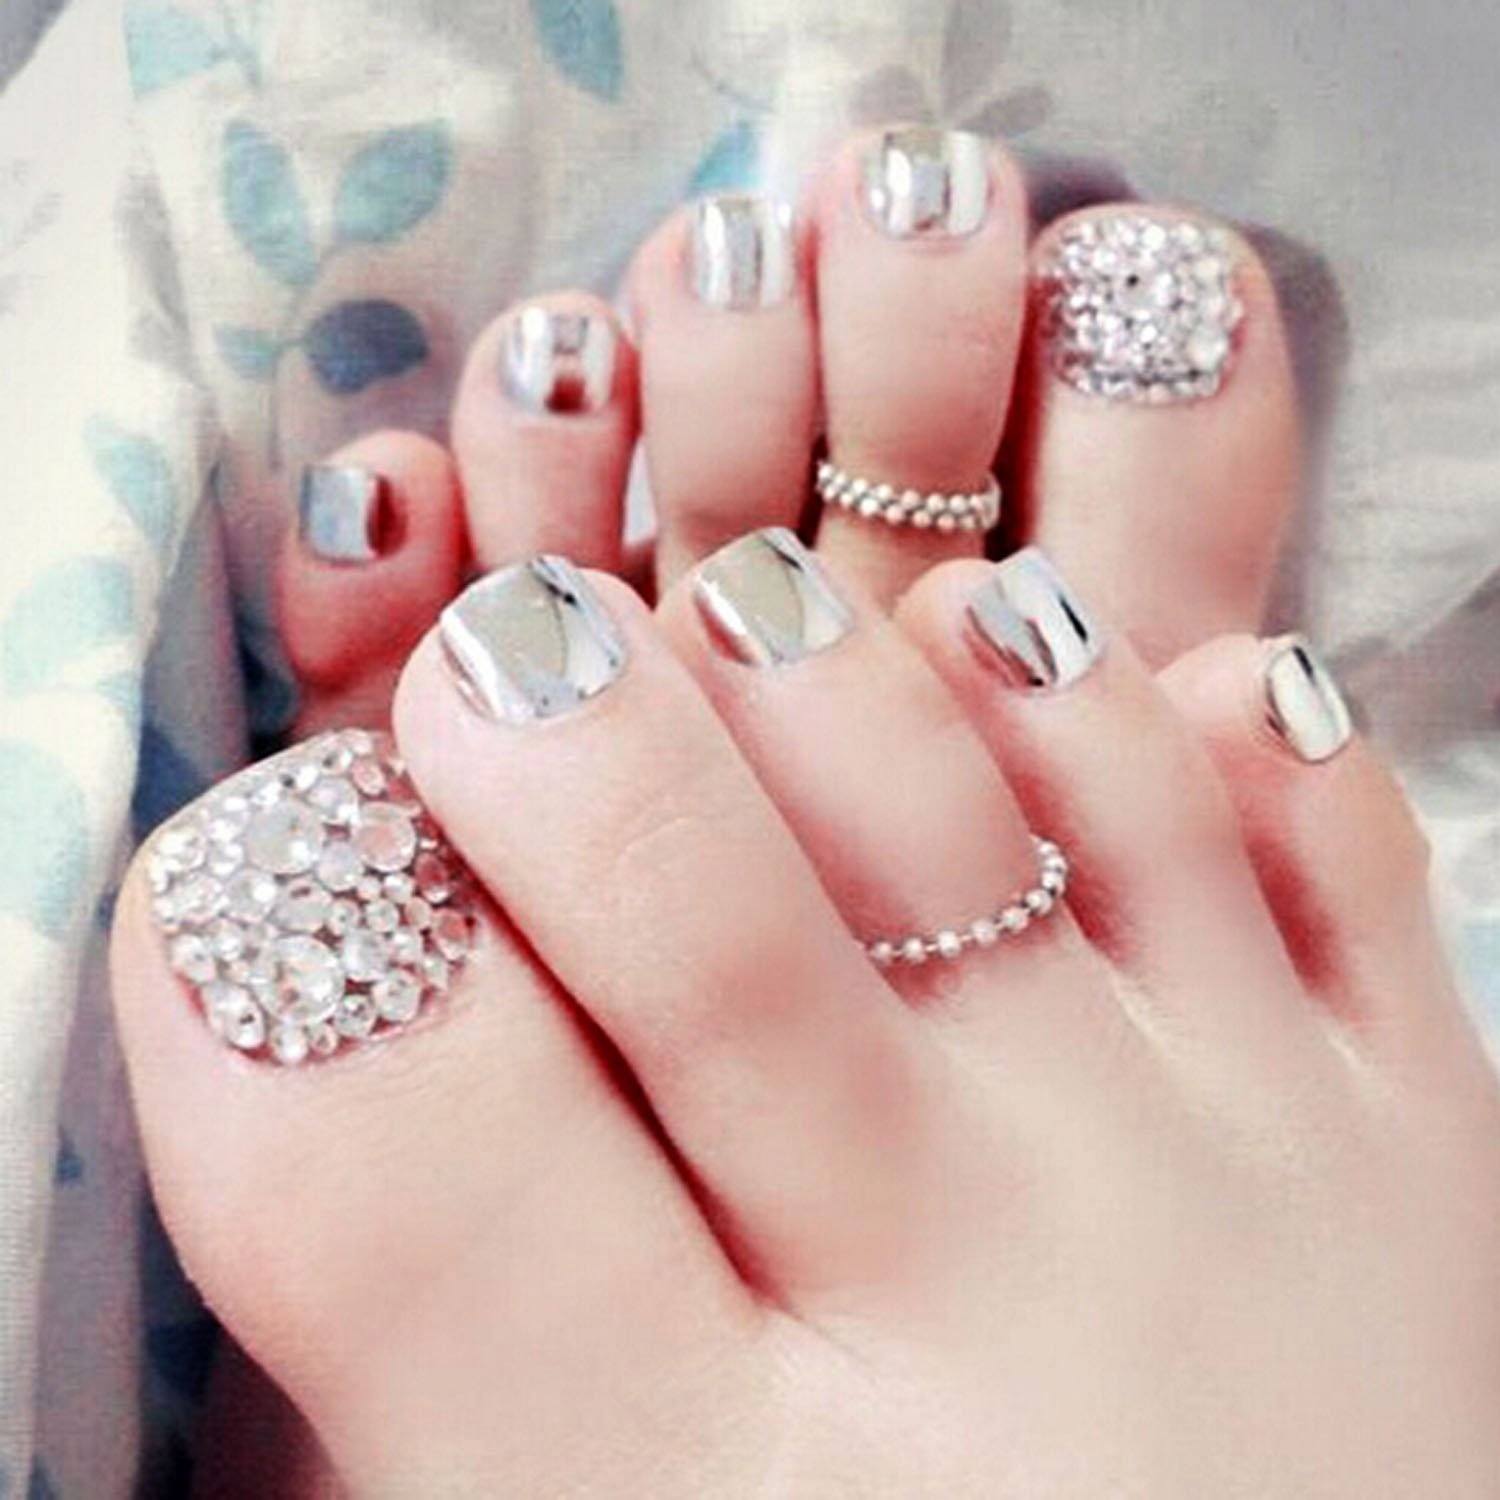 Amazon.com : Yean Set of 24 False Nail for Toe Chic Exquisite Bling ...